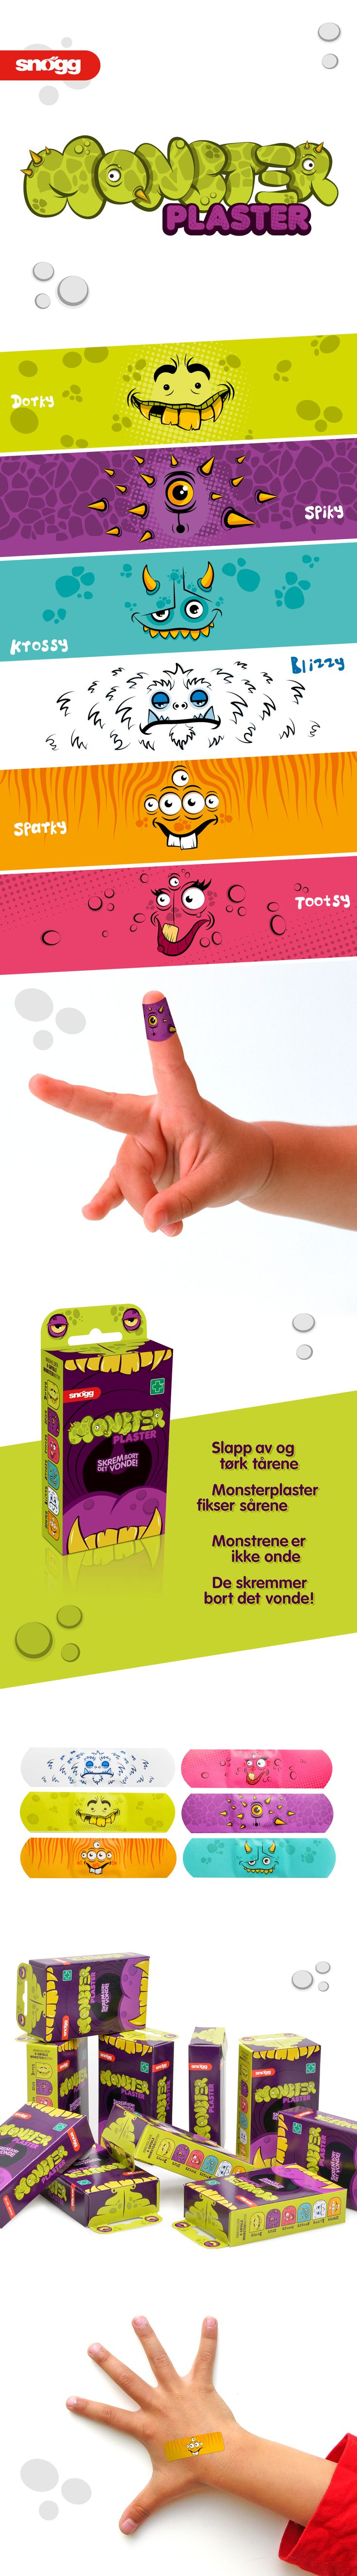 Snøgg - Monsterplaster on Behance